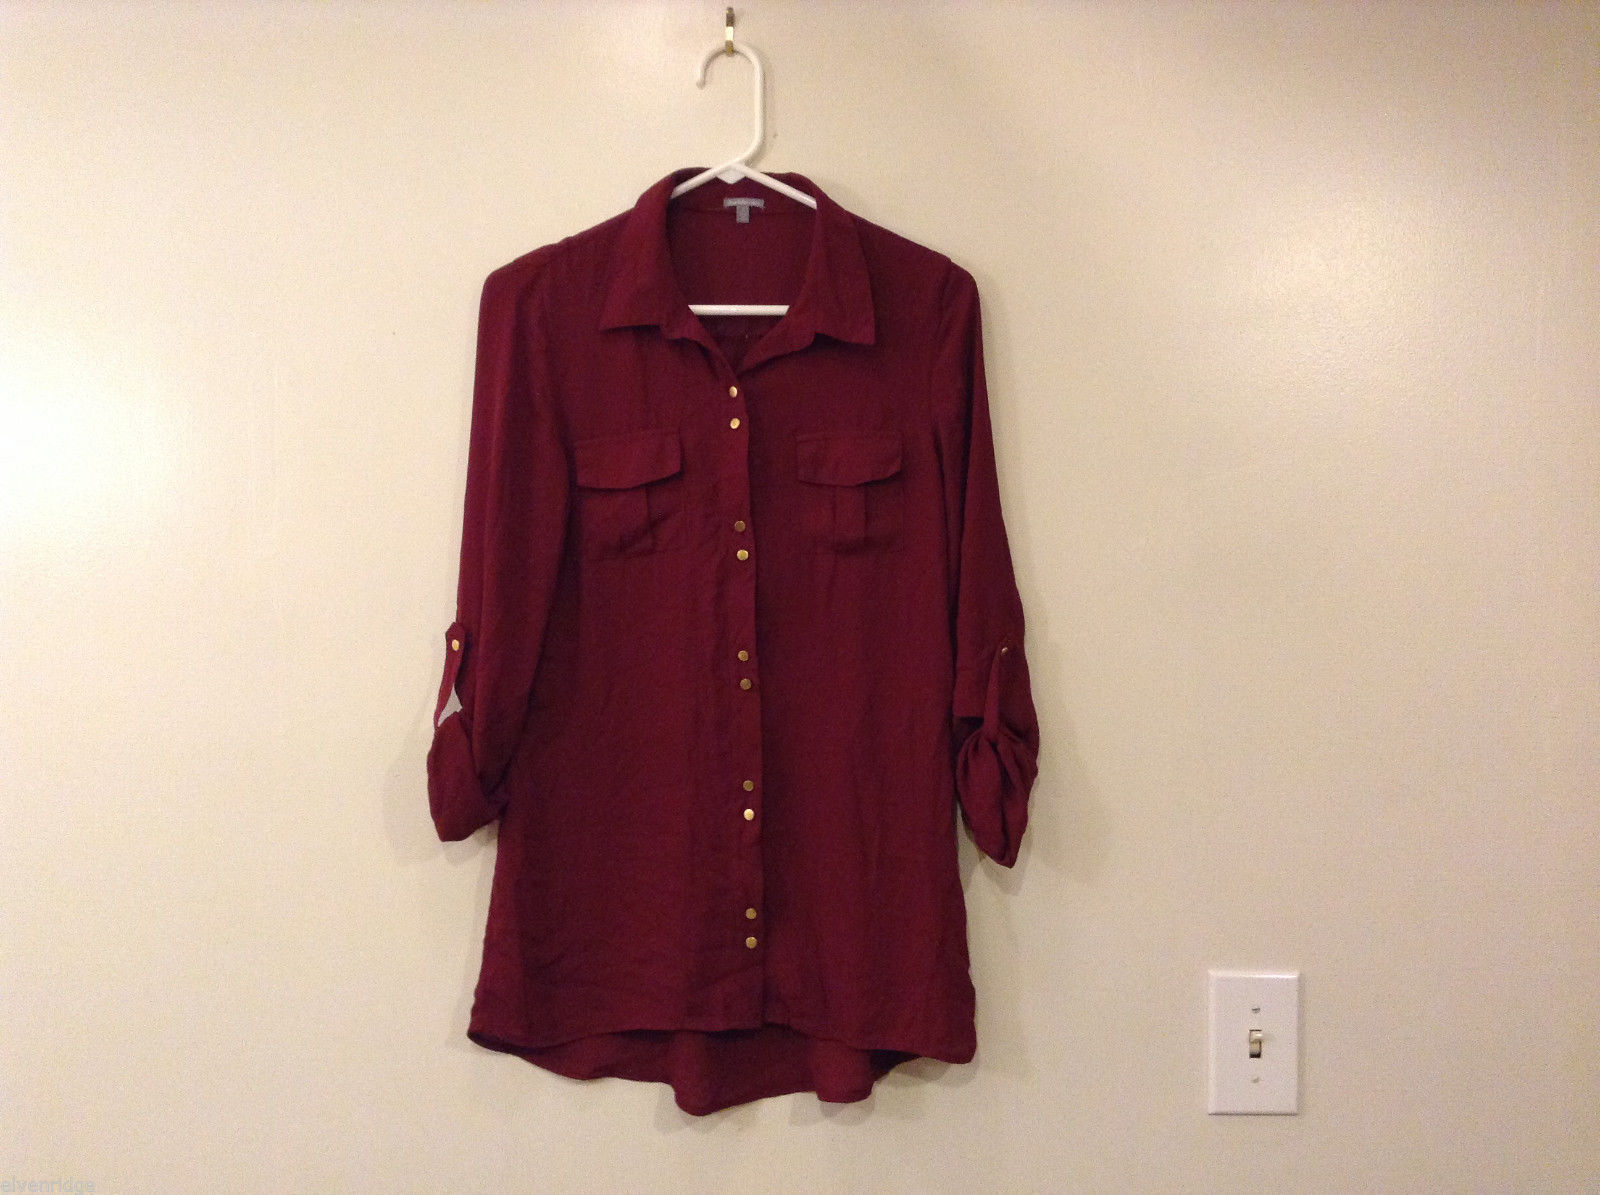 Charlotte Russe Dark Red Wine Maroon Blouse Shirt Top 100% polyester, Size S